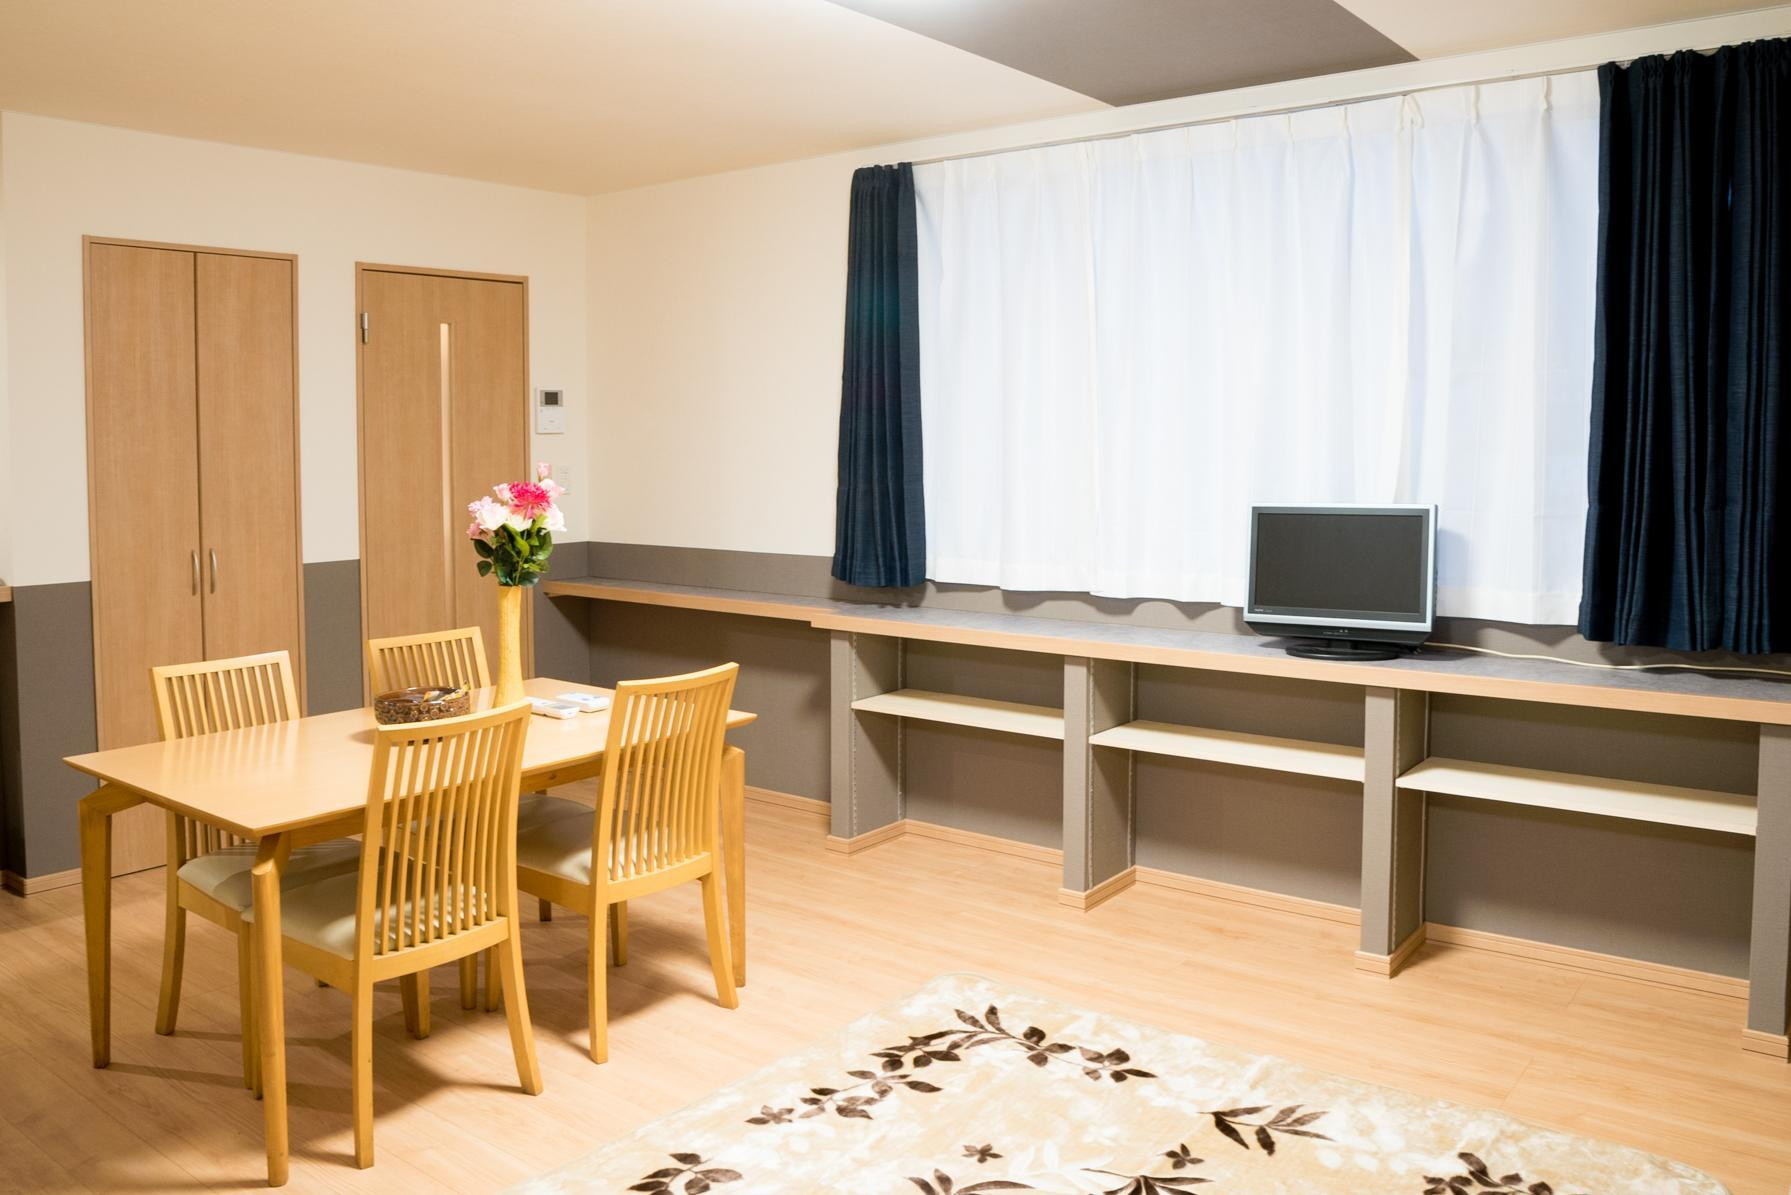 201 BIEI 1bedroom Apartment W  Wifi And Parking